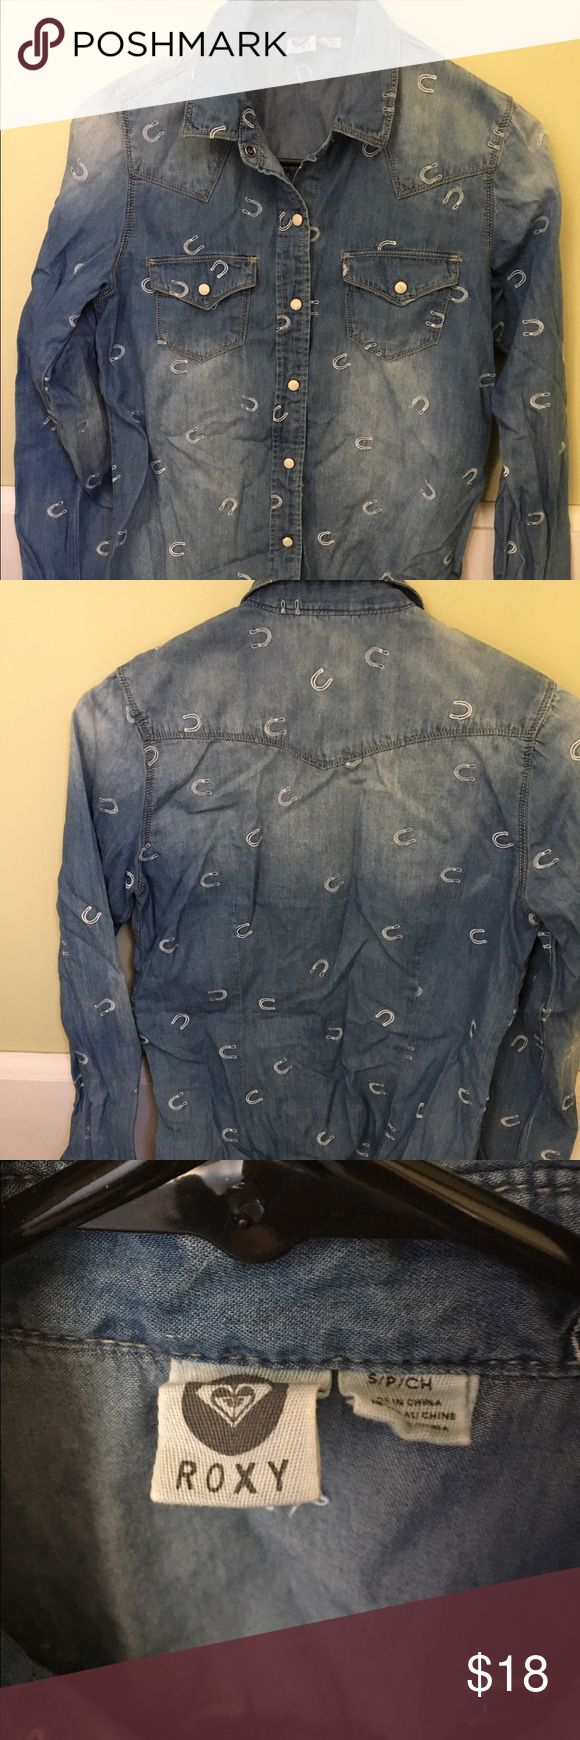 Roxy Women's Button Down Shirt Brand new, never worn, this Button-Down Shirt is so cute and perfect for that Country Concert coming up or for that every day Western Look. Soft 100% Cotton looks like Faded Denim but is comfortable like Cotton. With a Horseshoe Pattern, snap pockets and a snap down front, this shirt is really adorable. Giddy-Up🤠 Roxy Tops Button Down Shirts